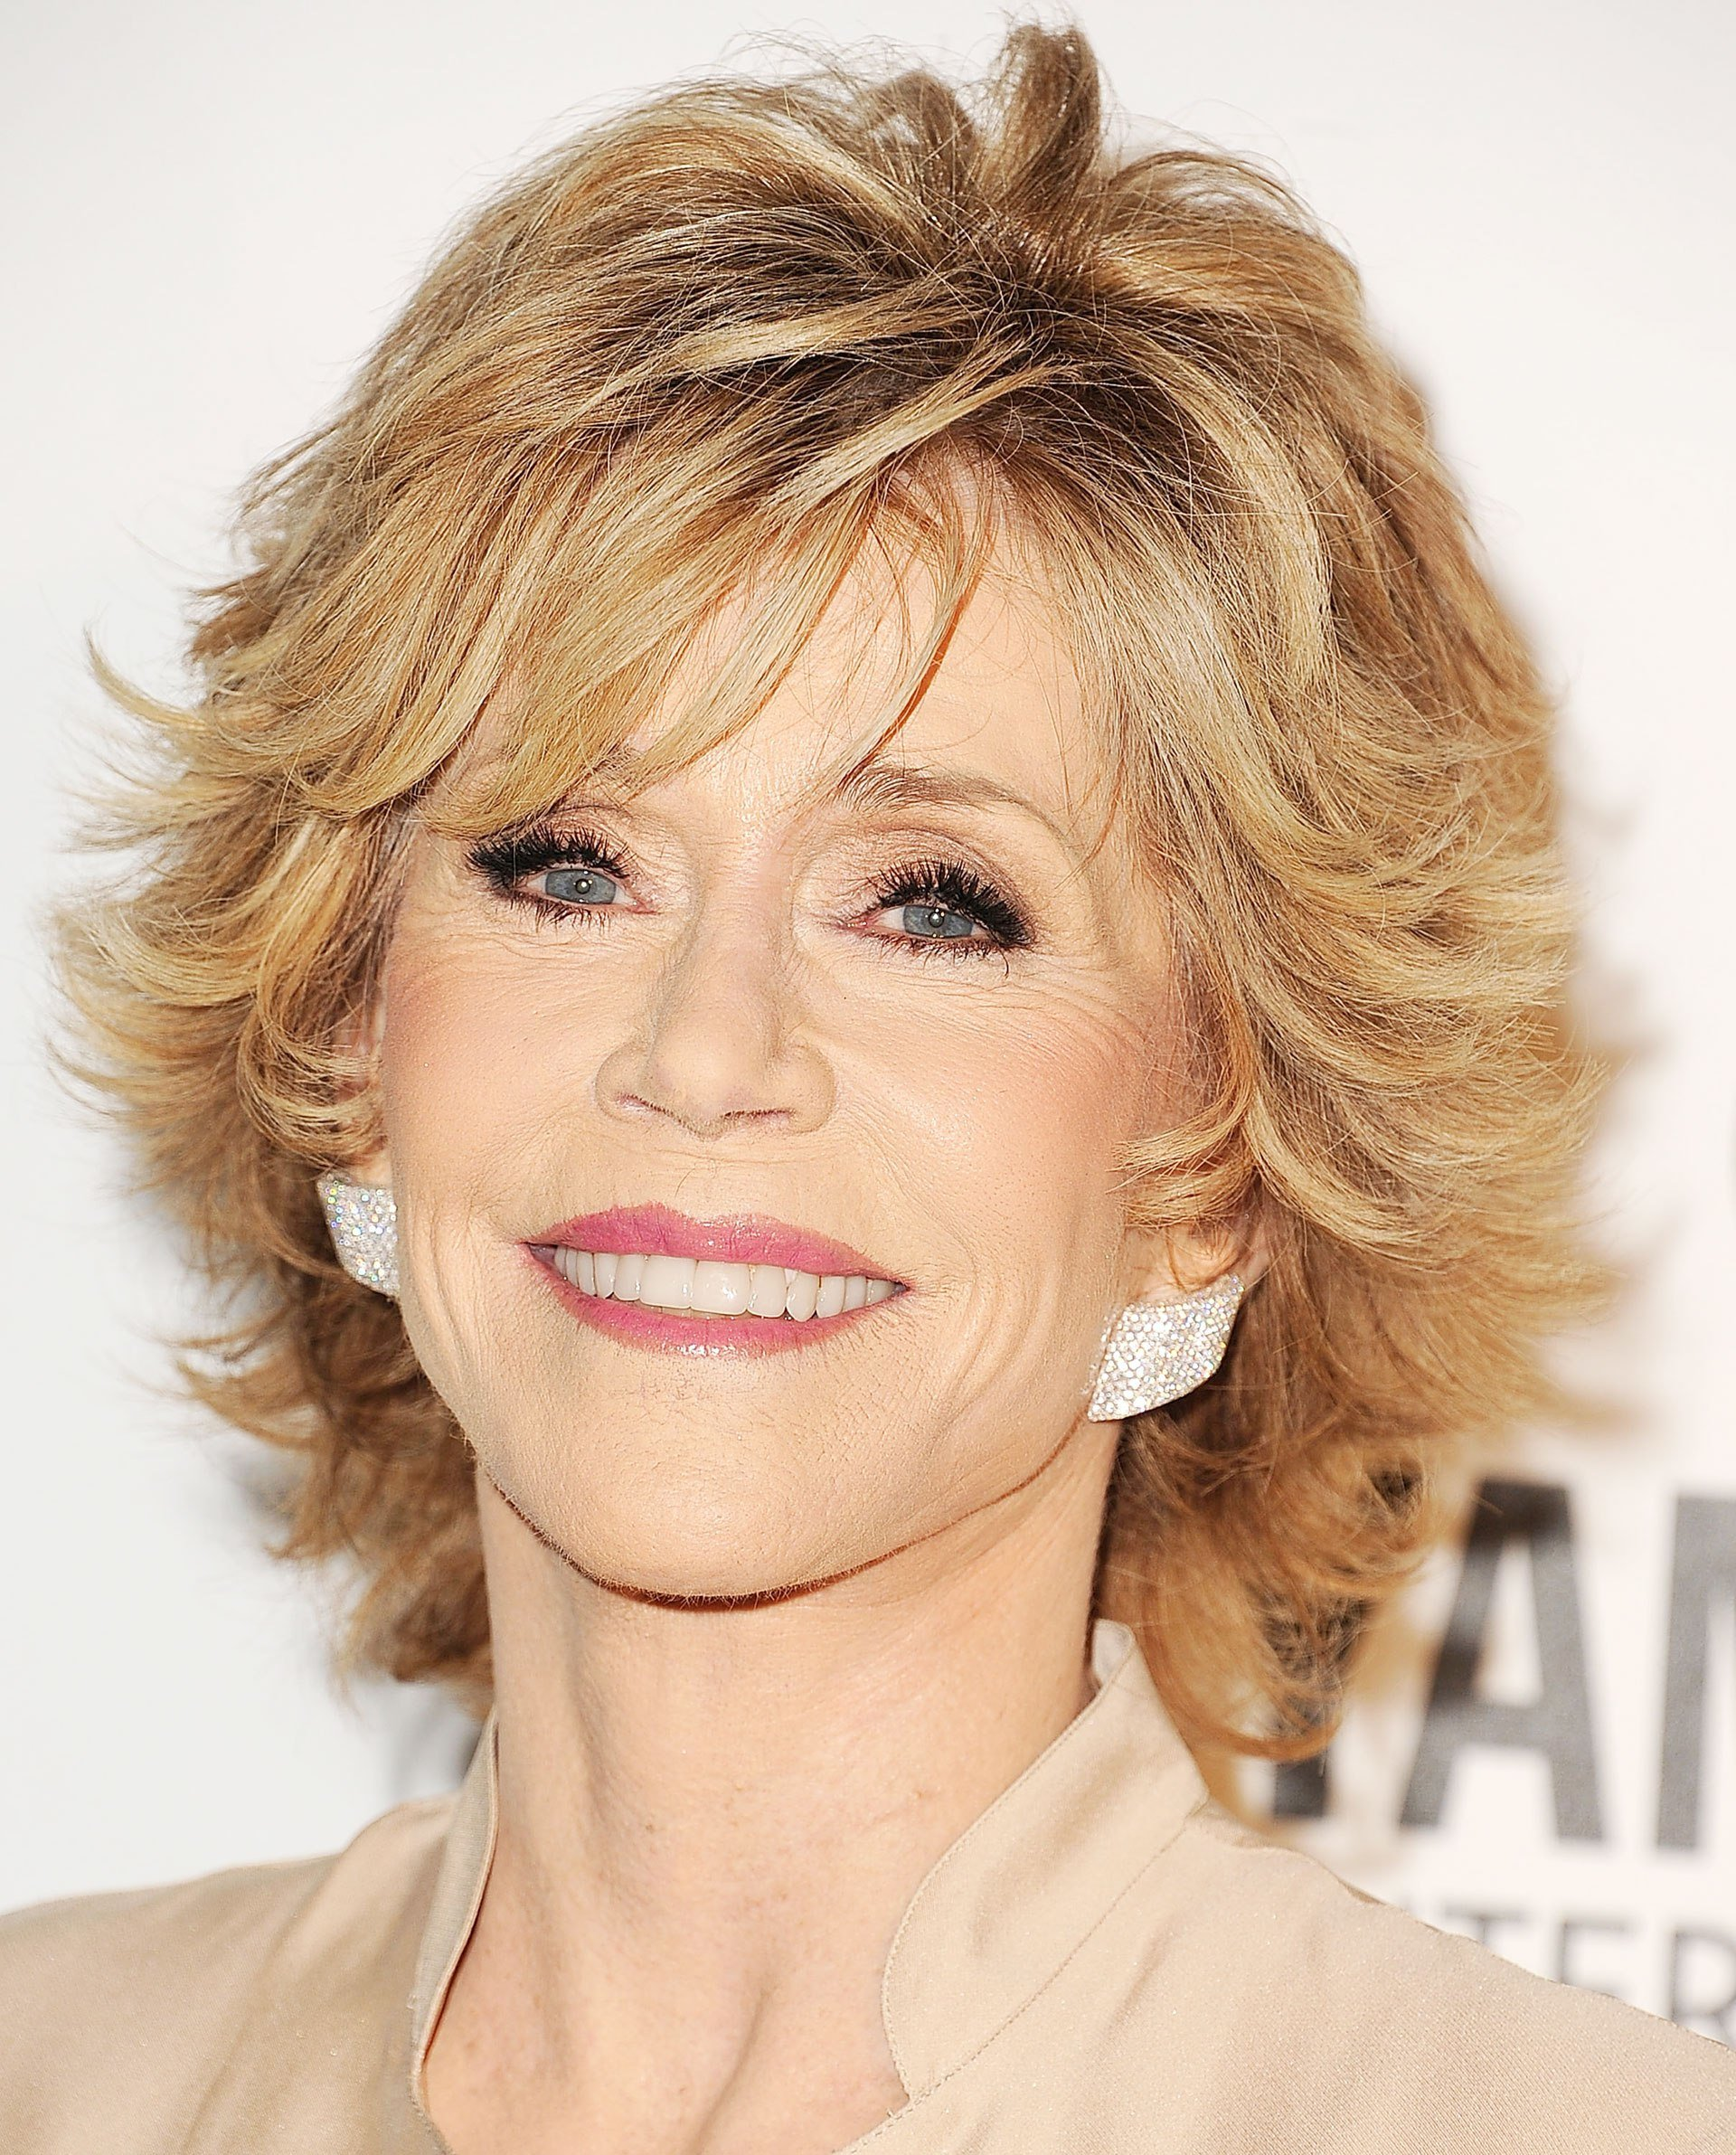 The Best 45 Best Hairstyles For Women Over 50 Pictures